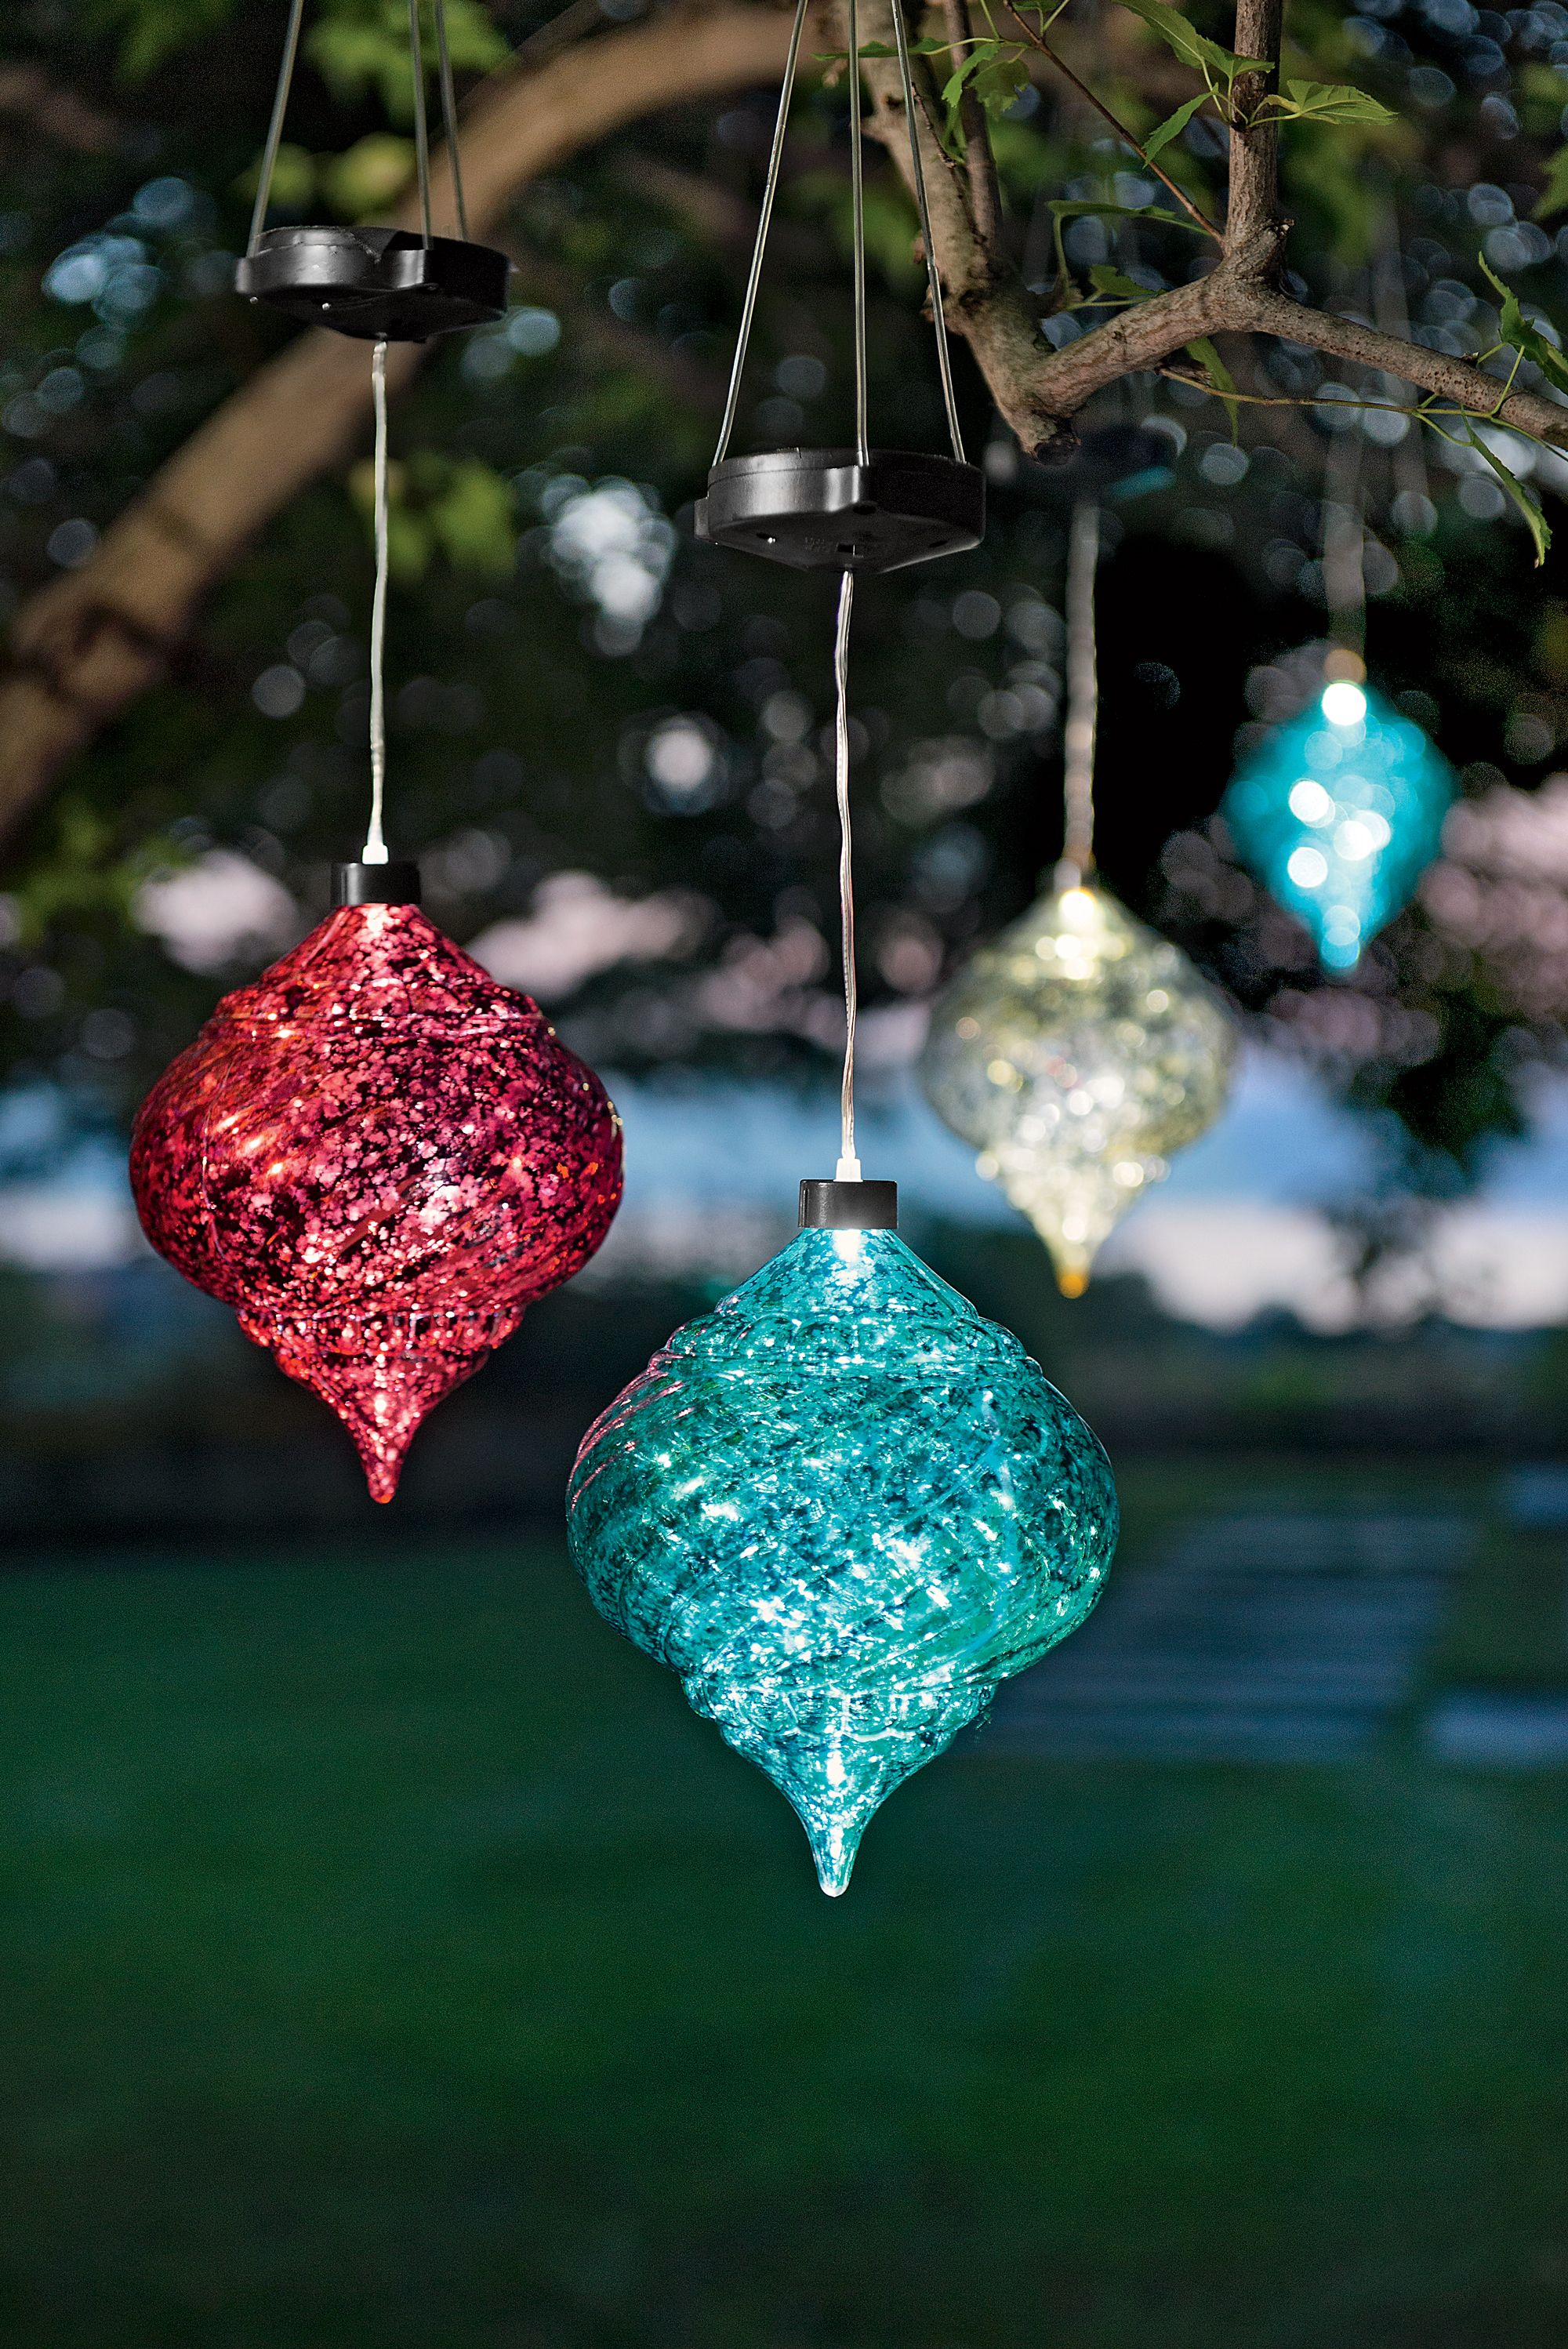 Large Outdoor Christmas Ornament Decorations